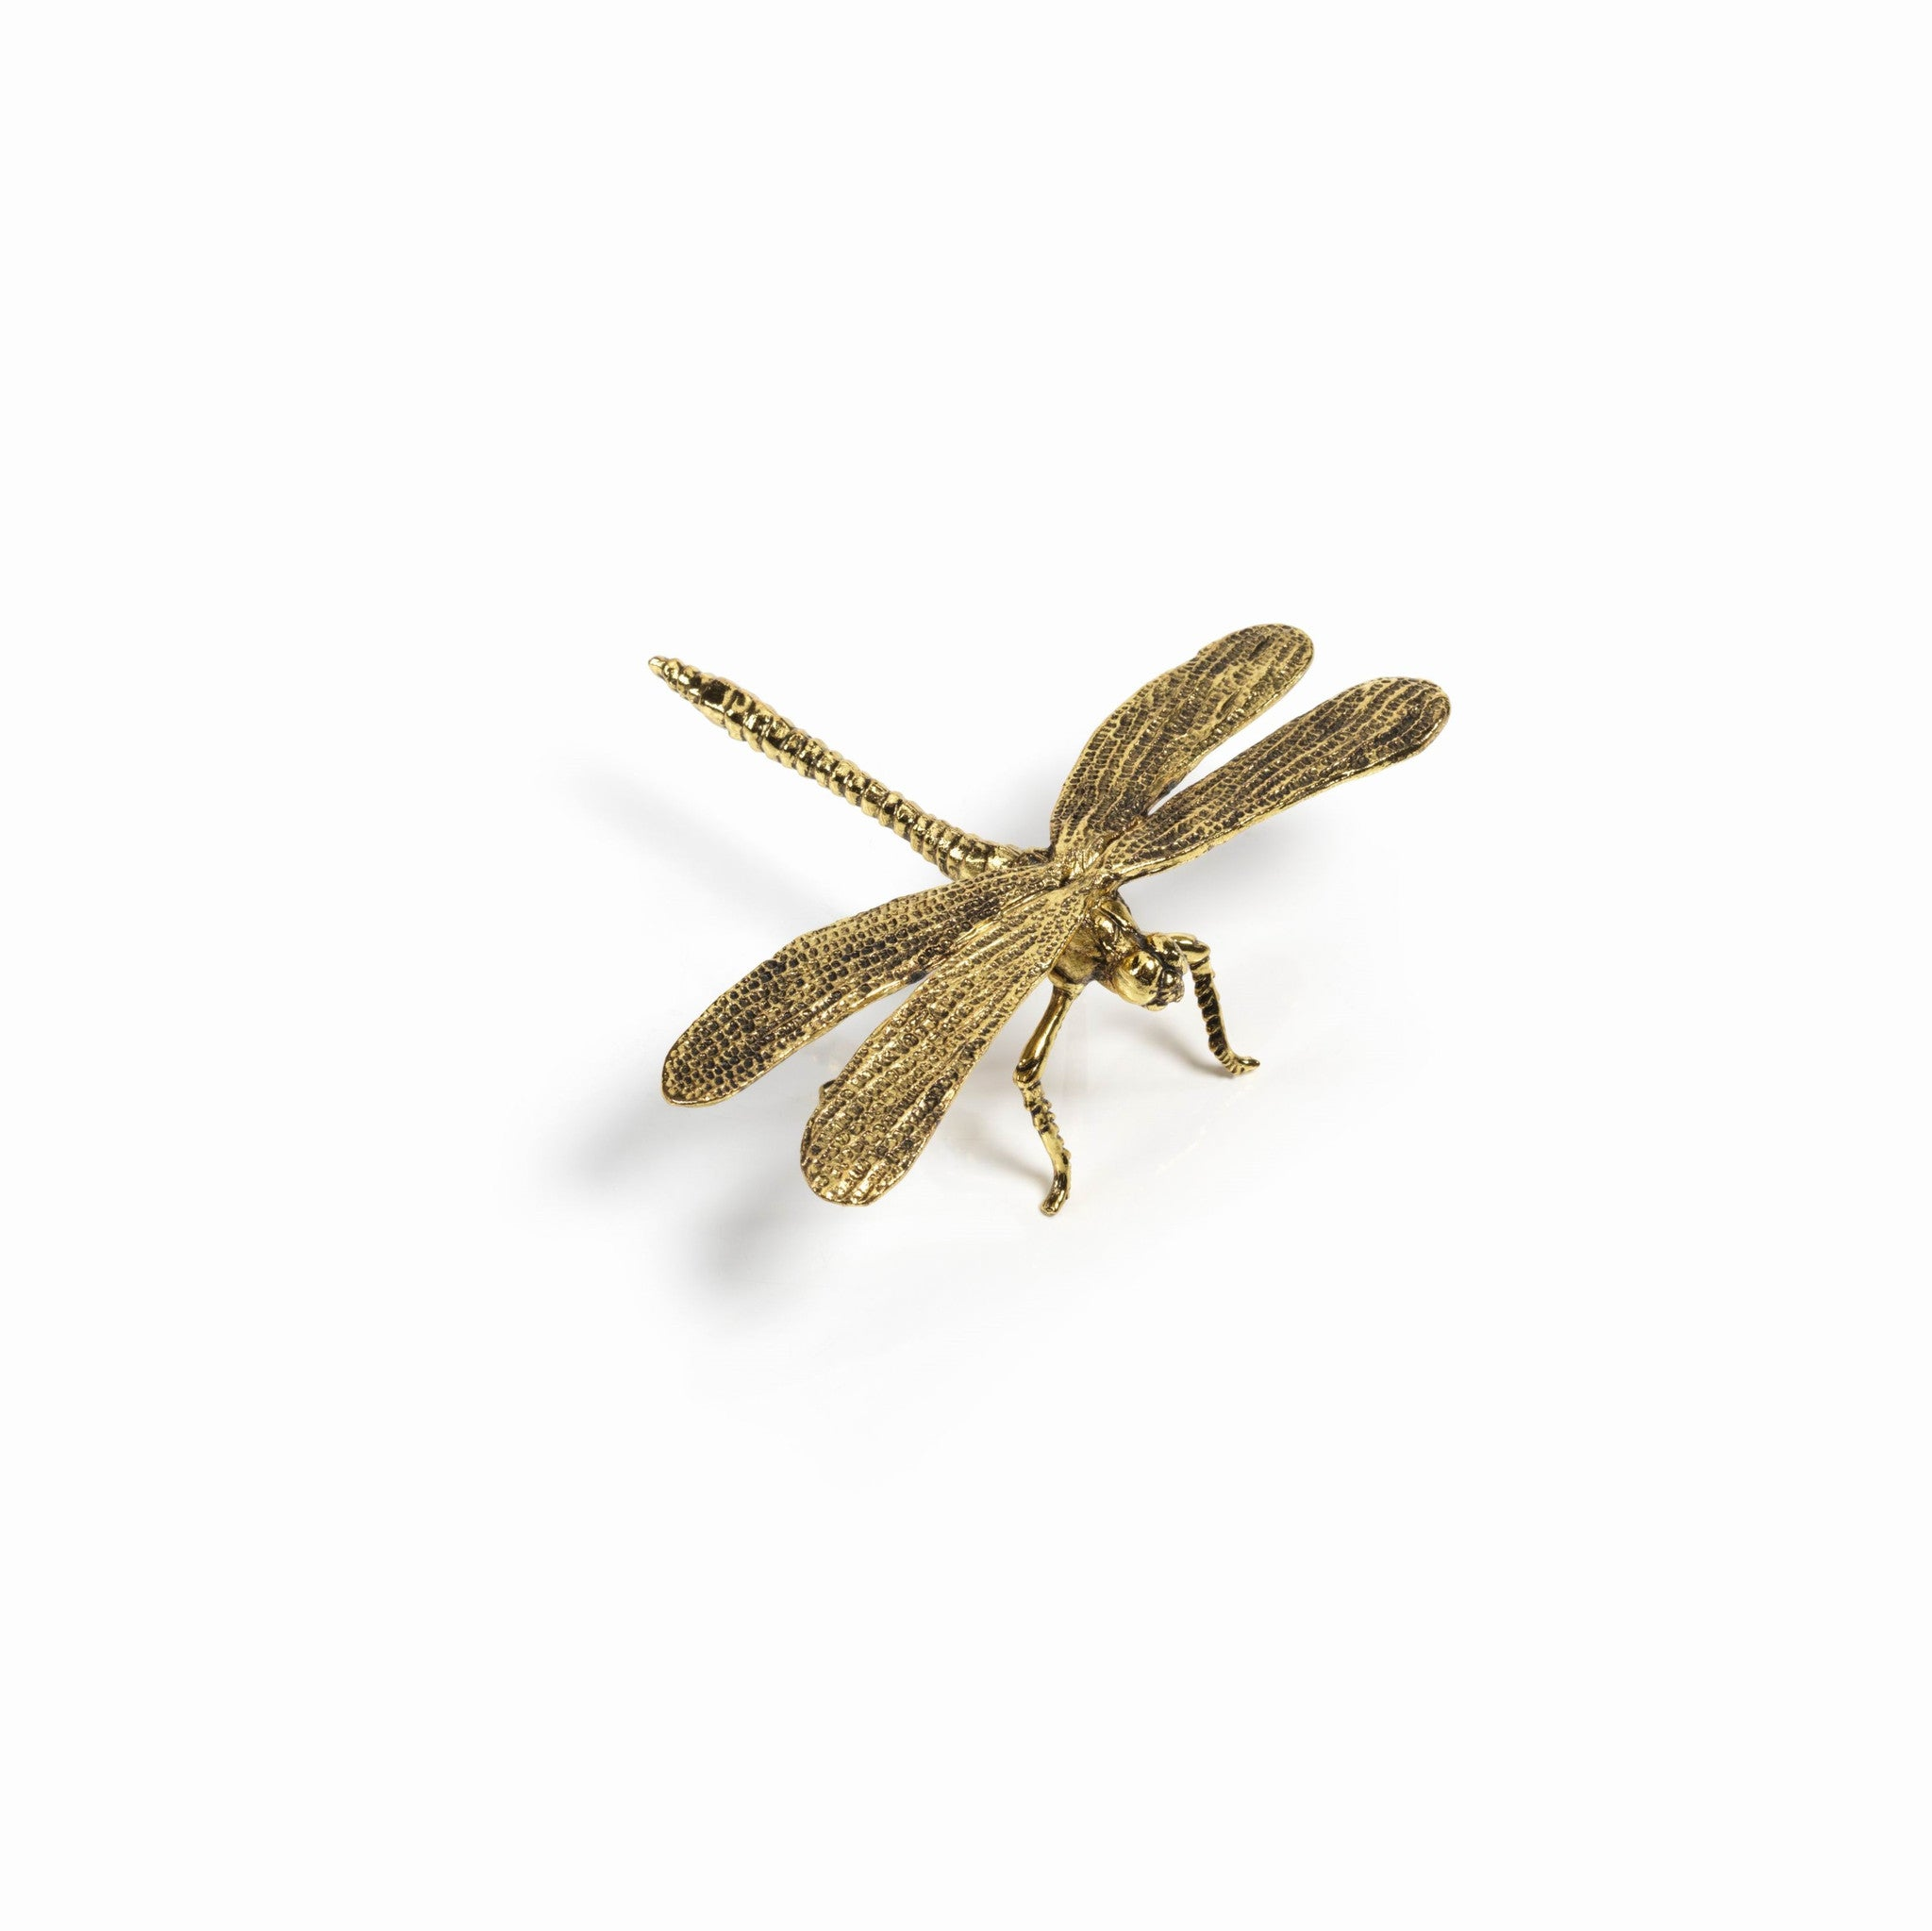 Decorative Gold Dragonfly - CARLYLE AVENUE